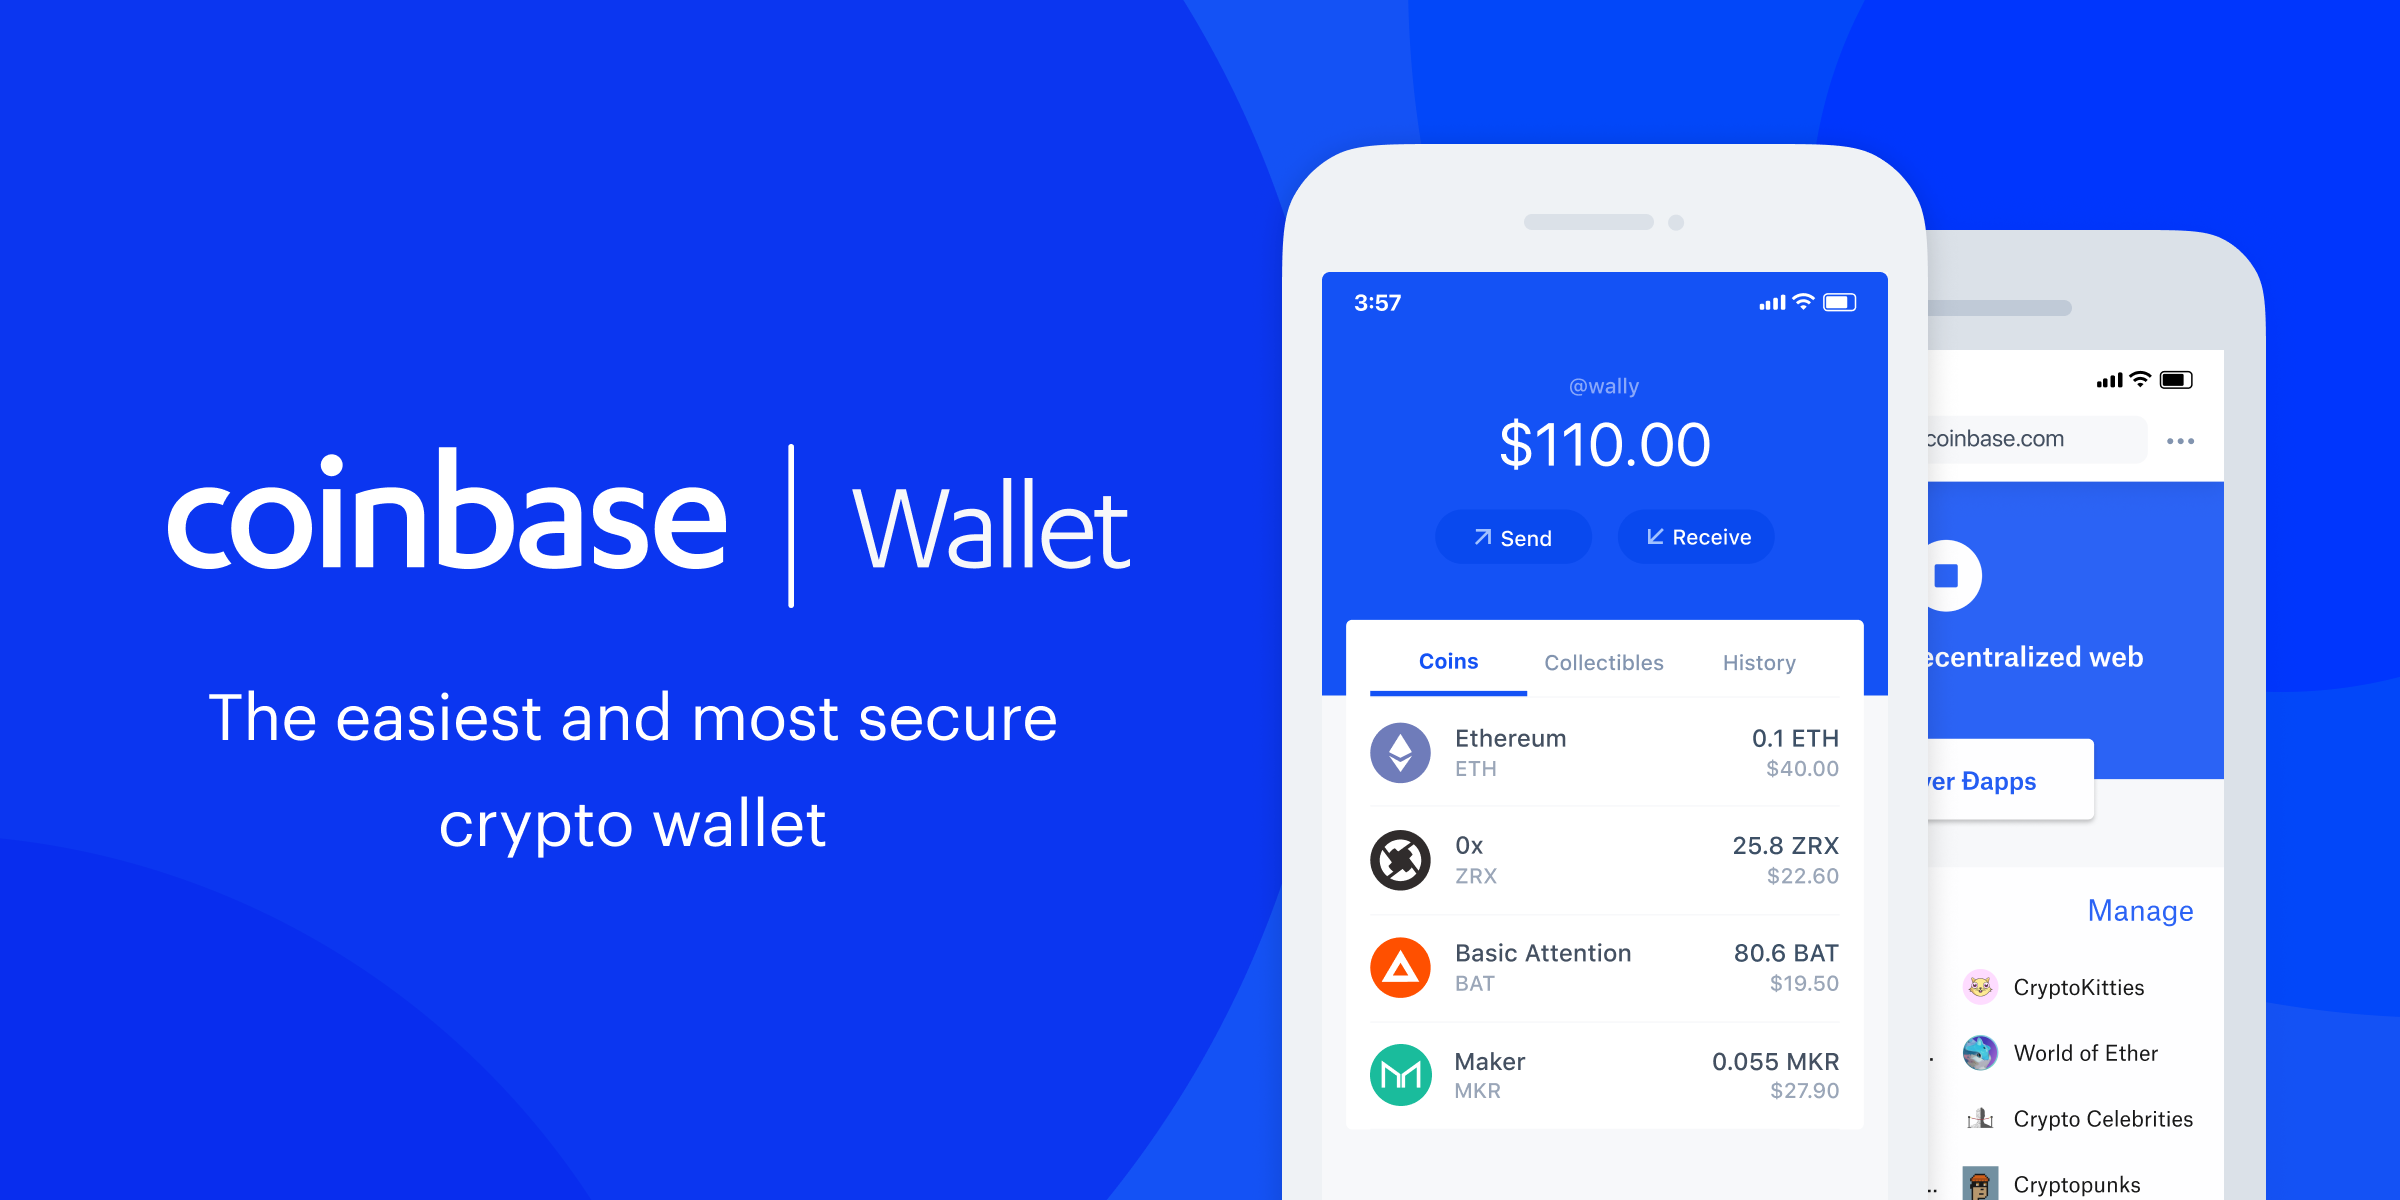 Coinbase Wallet Tosh Wallet - The Top 5 Wallets To Collect NFT's